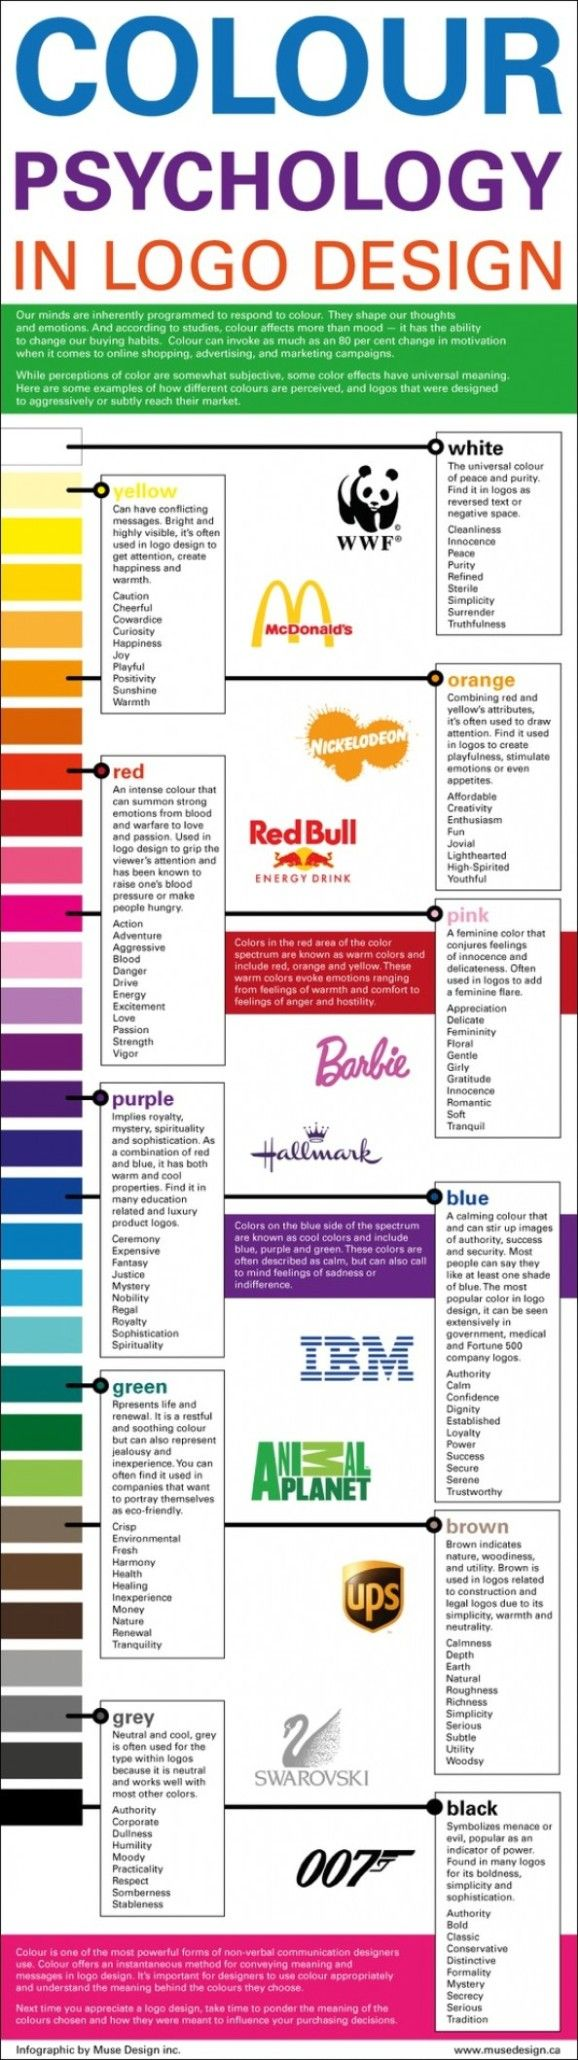 Design Most Calming Color 63 best colour psychology images on pinterest colors color in logo design infographic